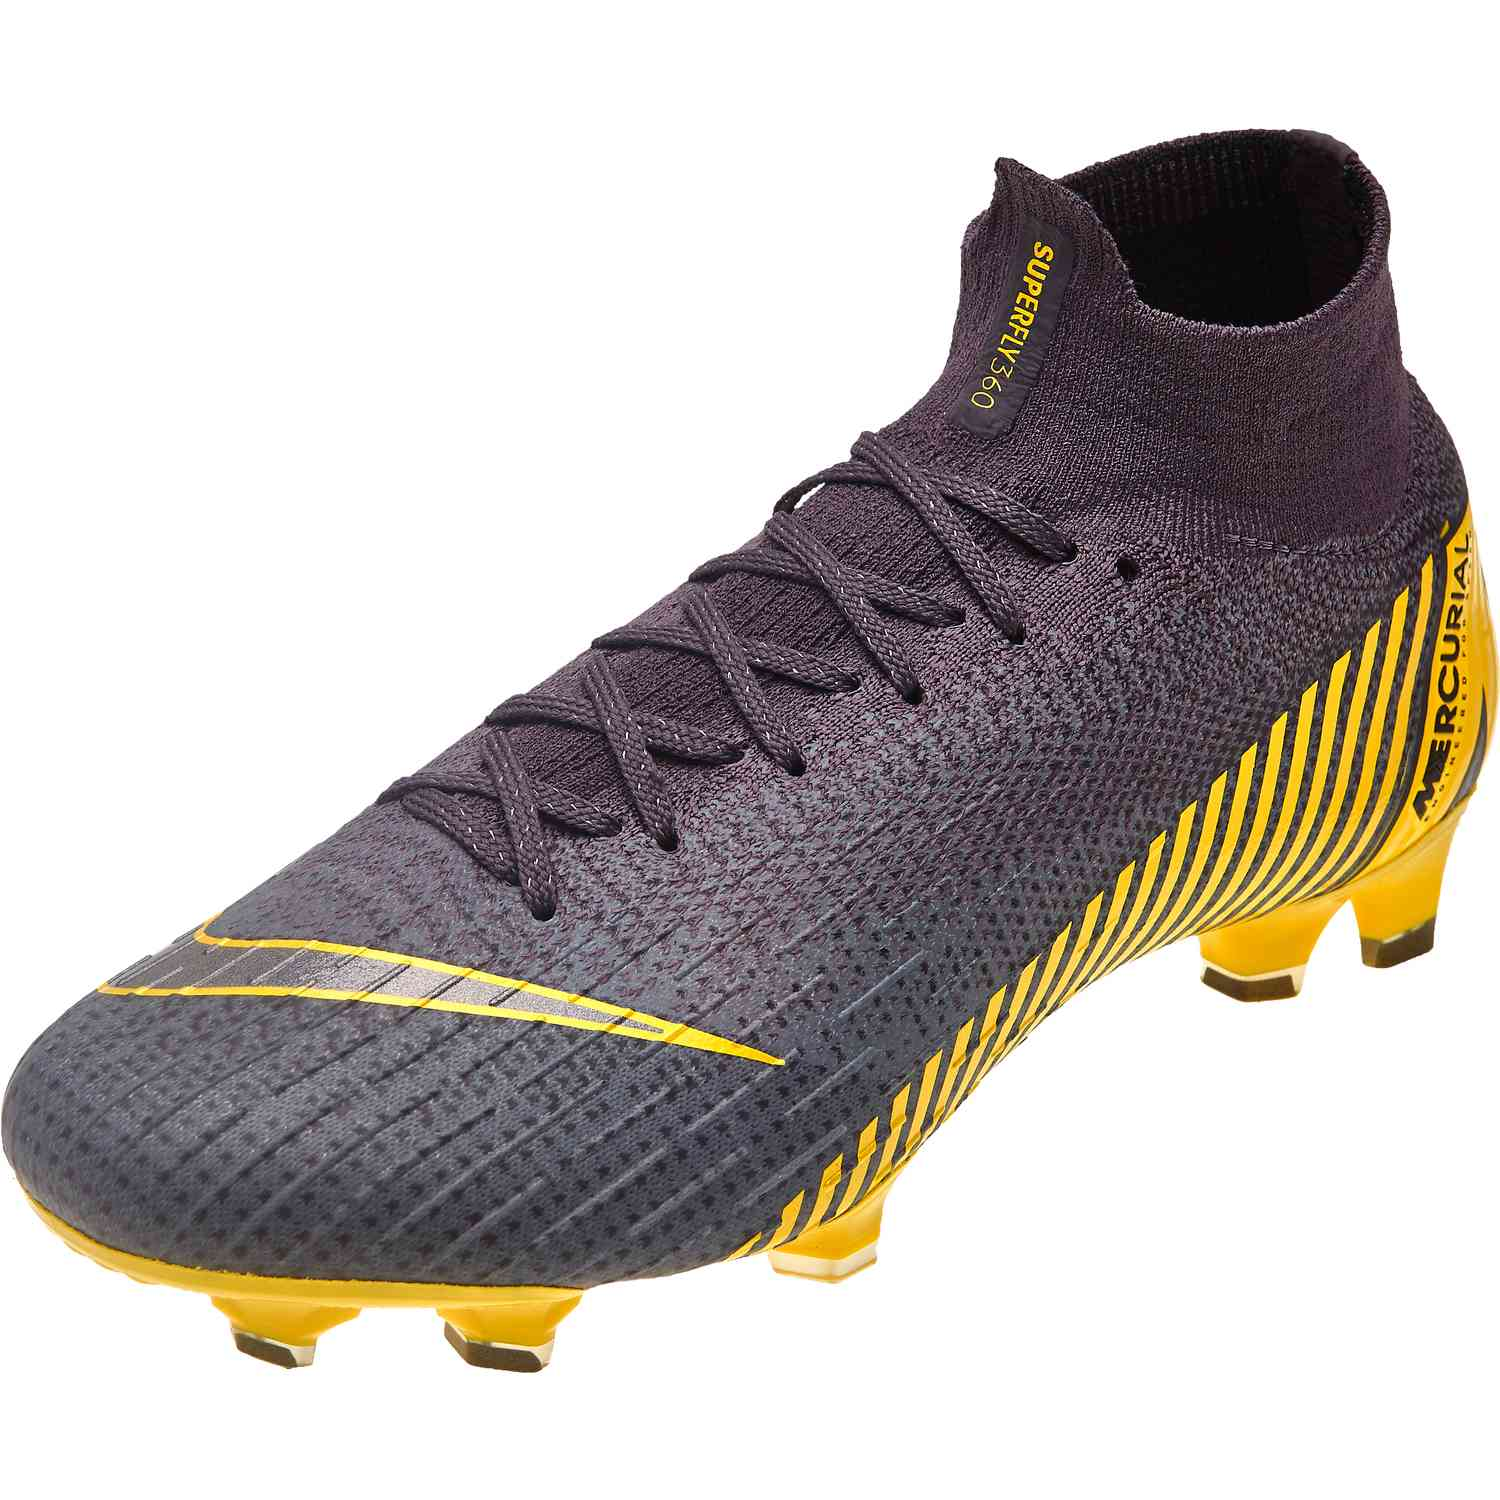 aa402711f Nike Mercurial Superfly 6 Elite FG - Game Over - SoccerPro